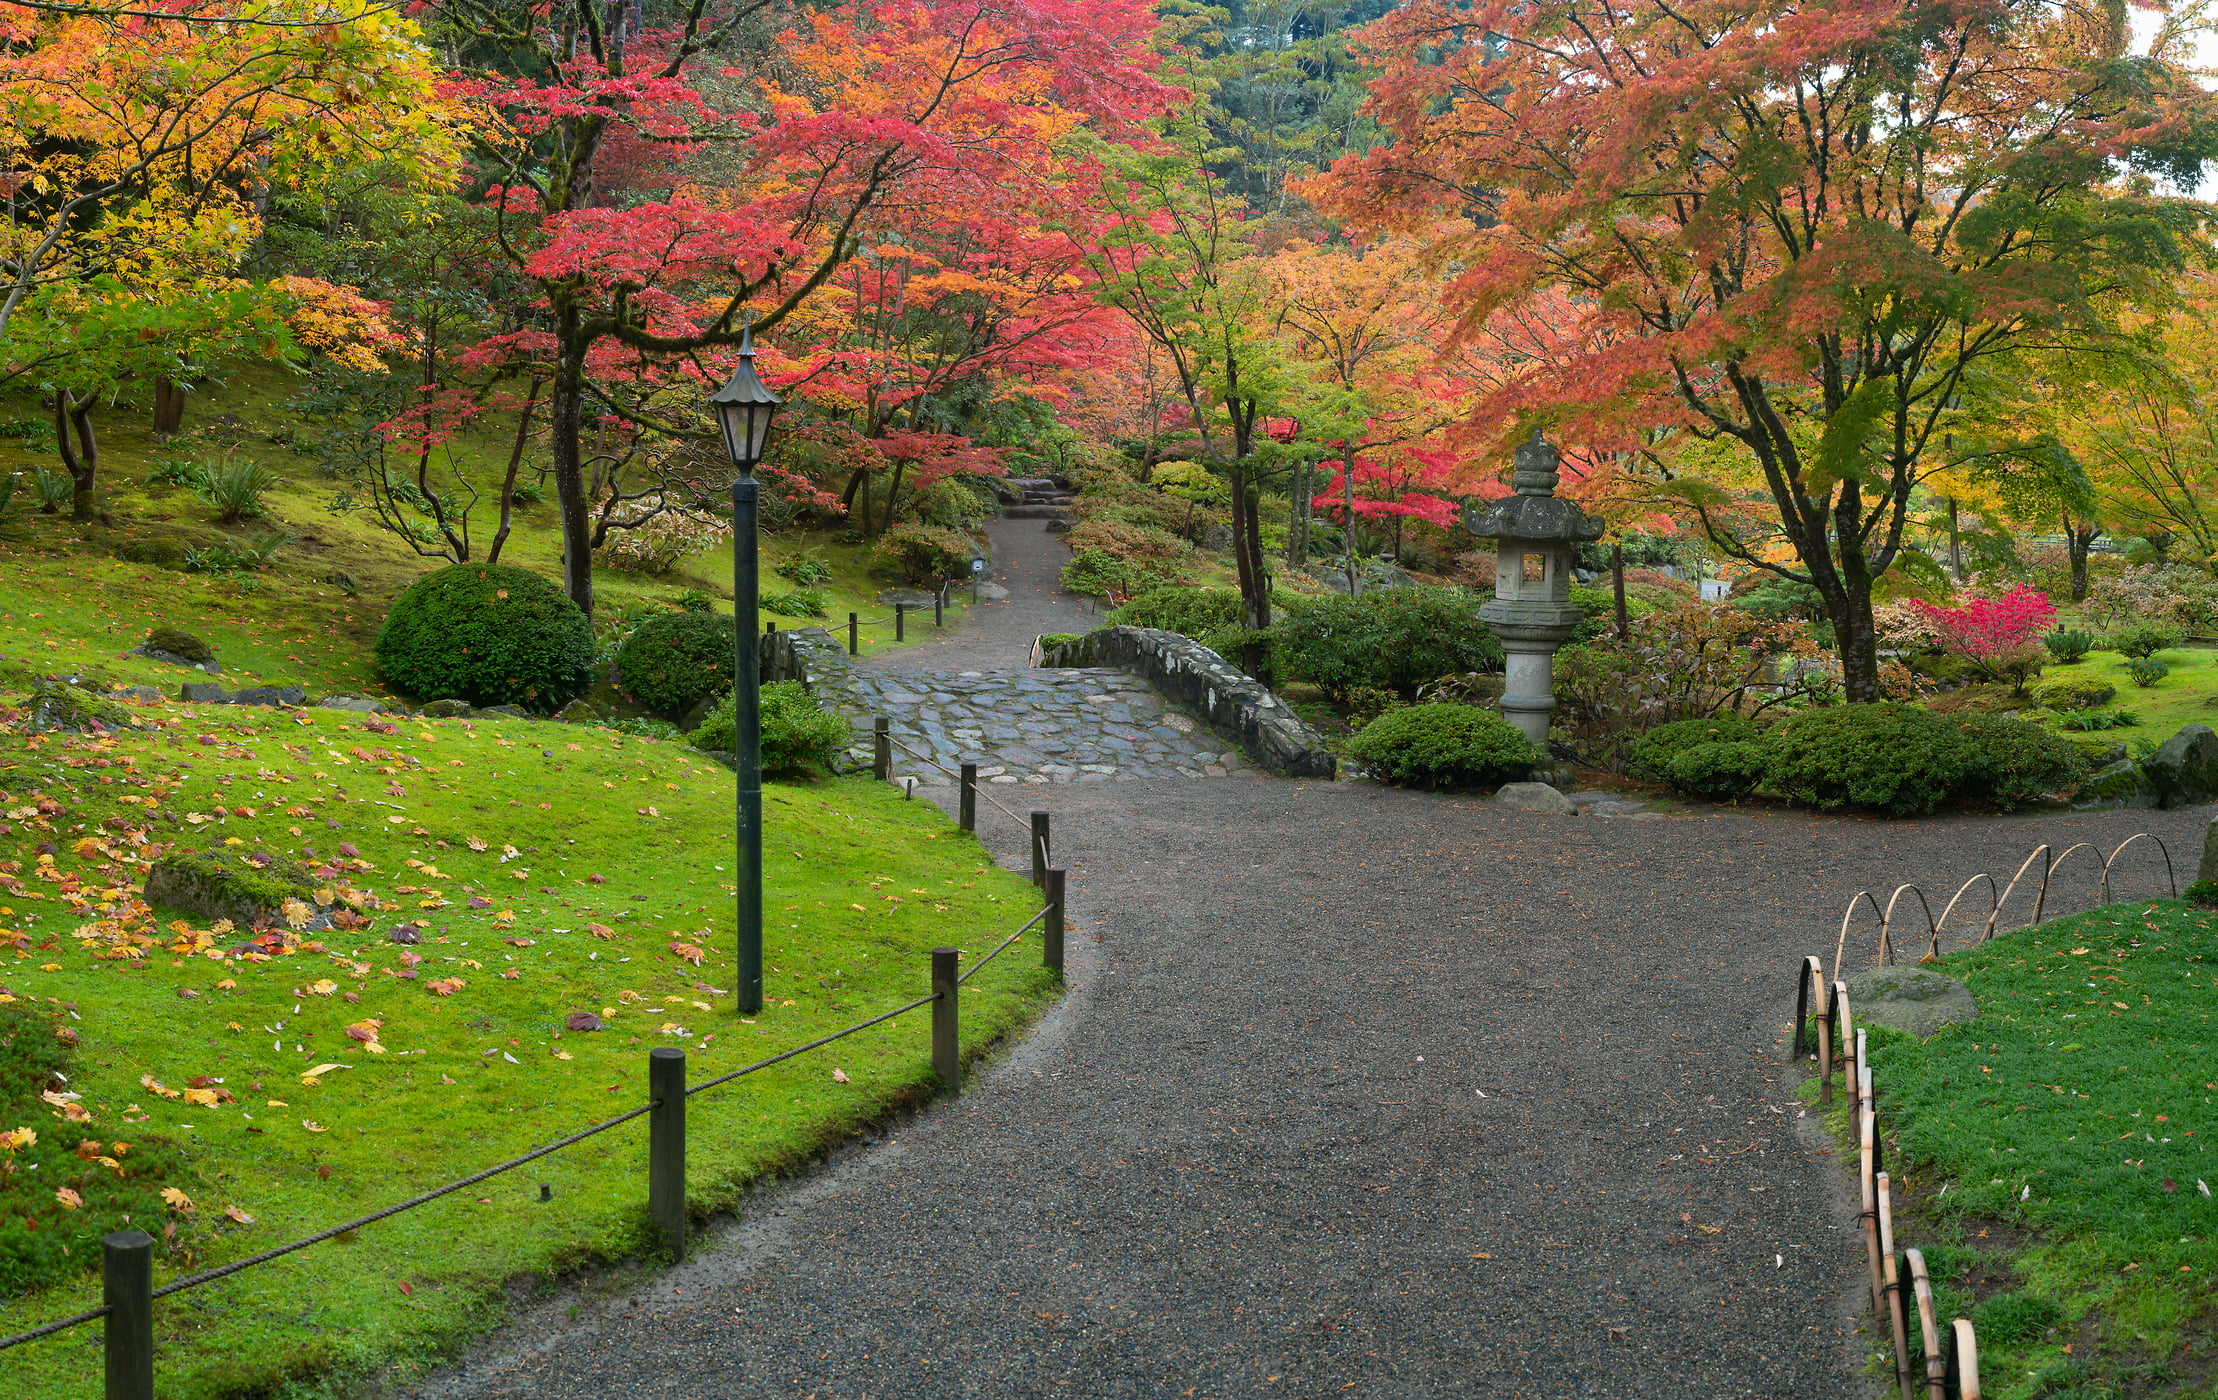 306 megapixels! A very high resolution, large-format VAST photo print of a colorful Japanese garden with fall foliage and a walkway; nature photograph created by Greg Probst in Japanese Garden, Seattle, WA